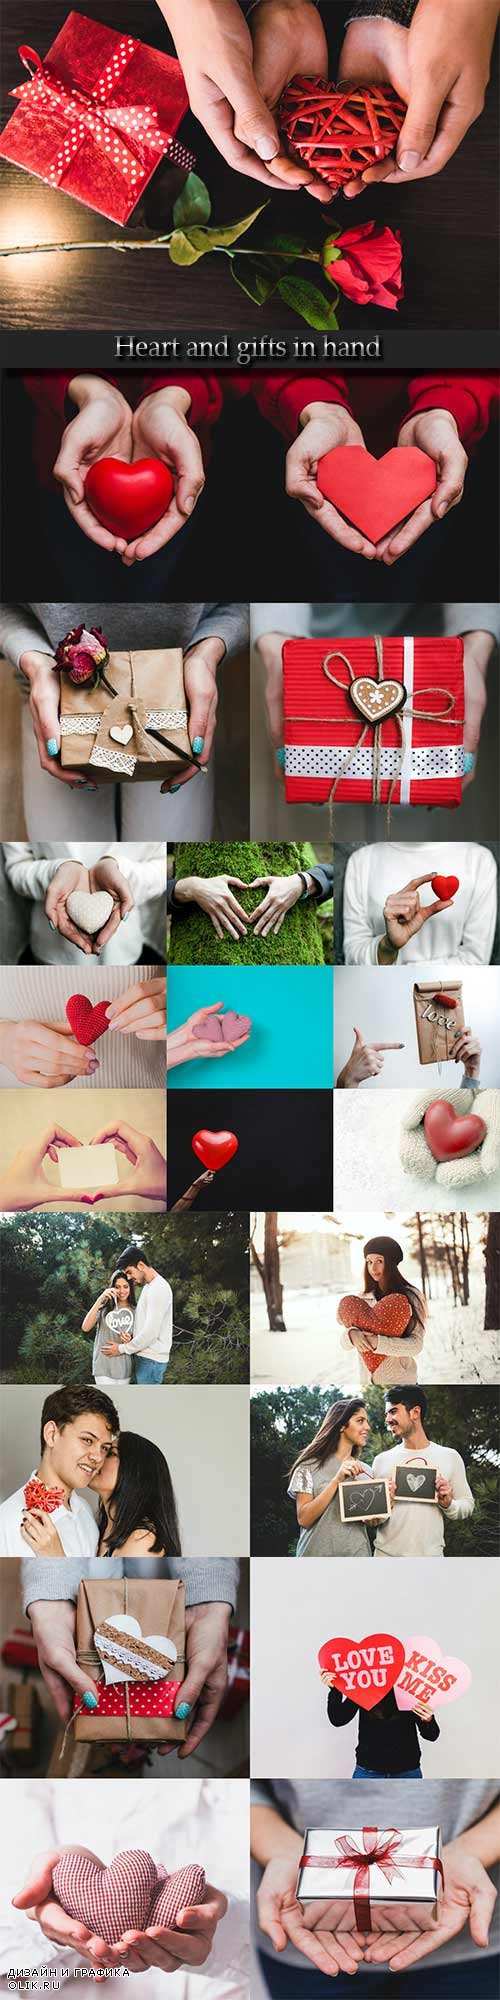 Heart and gifts in hand